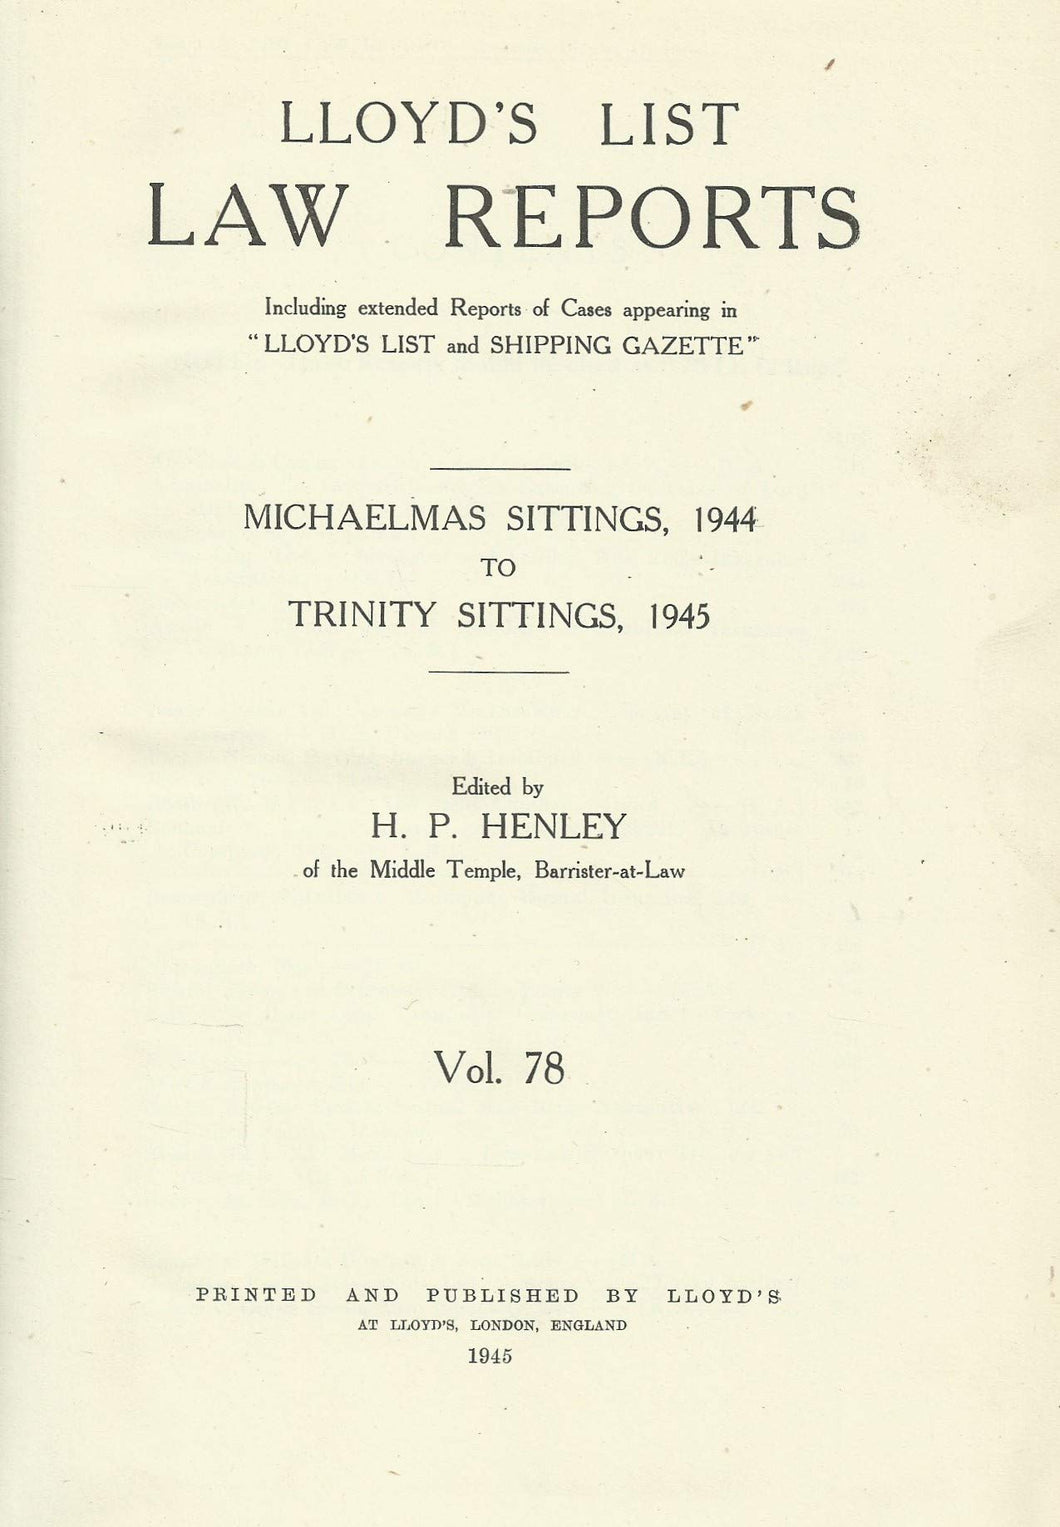 Lloyd's List Law Reports - Volume 78, Michaelmas Sittings, 1944 to Trinity Sittings, 1945